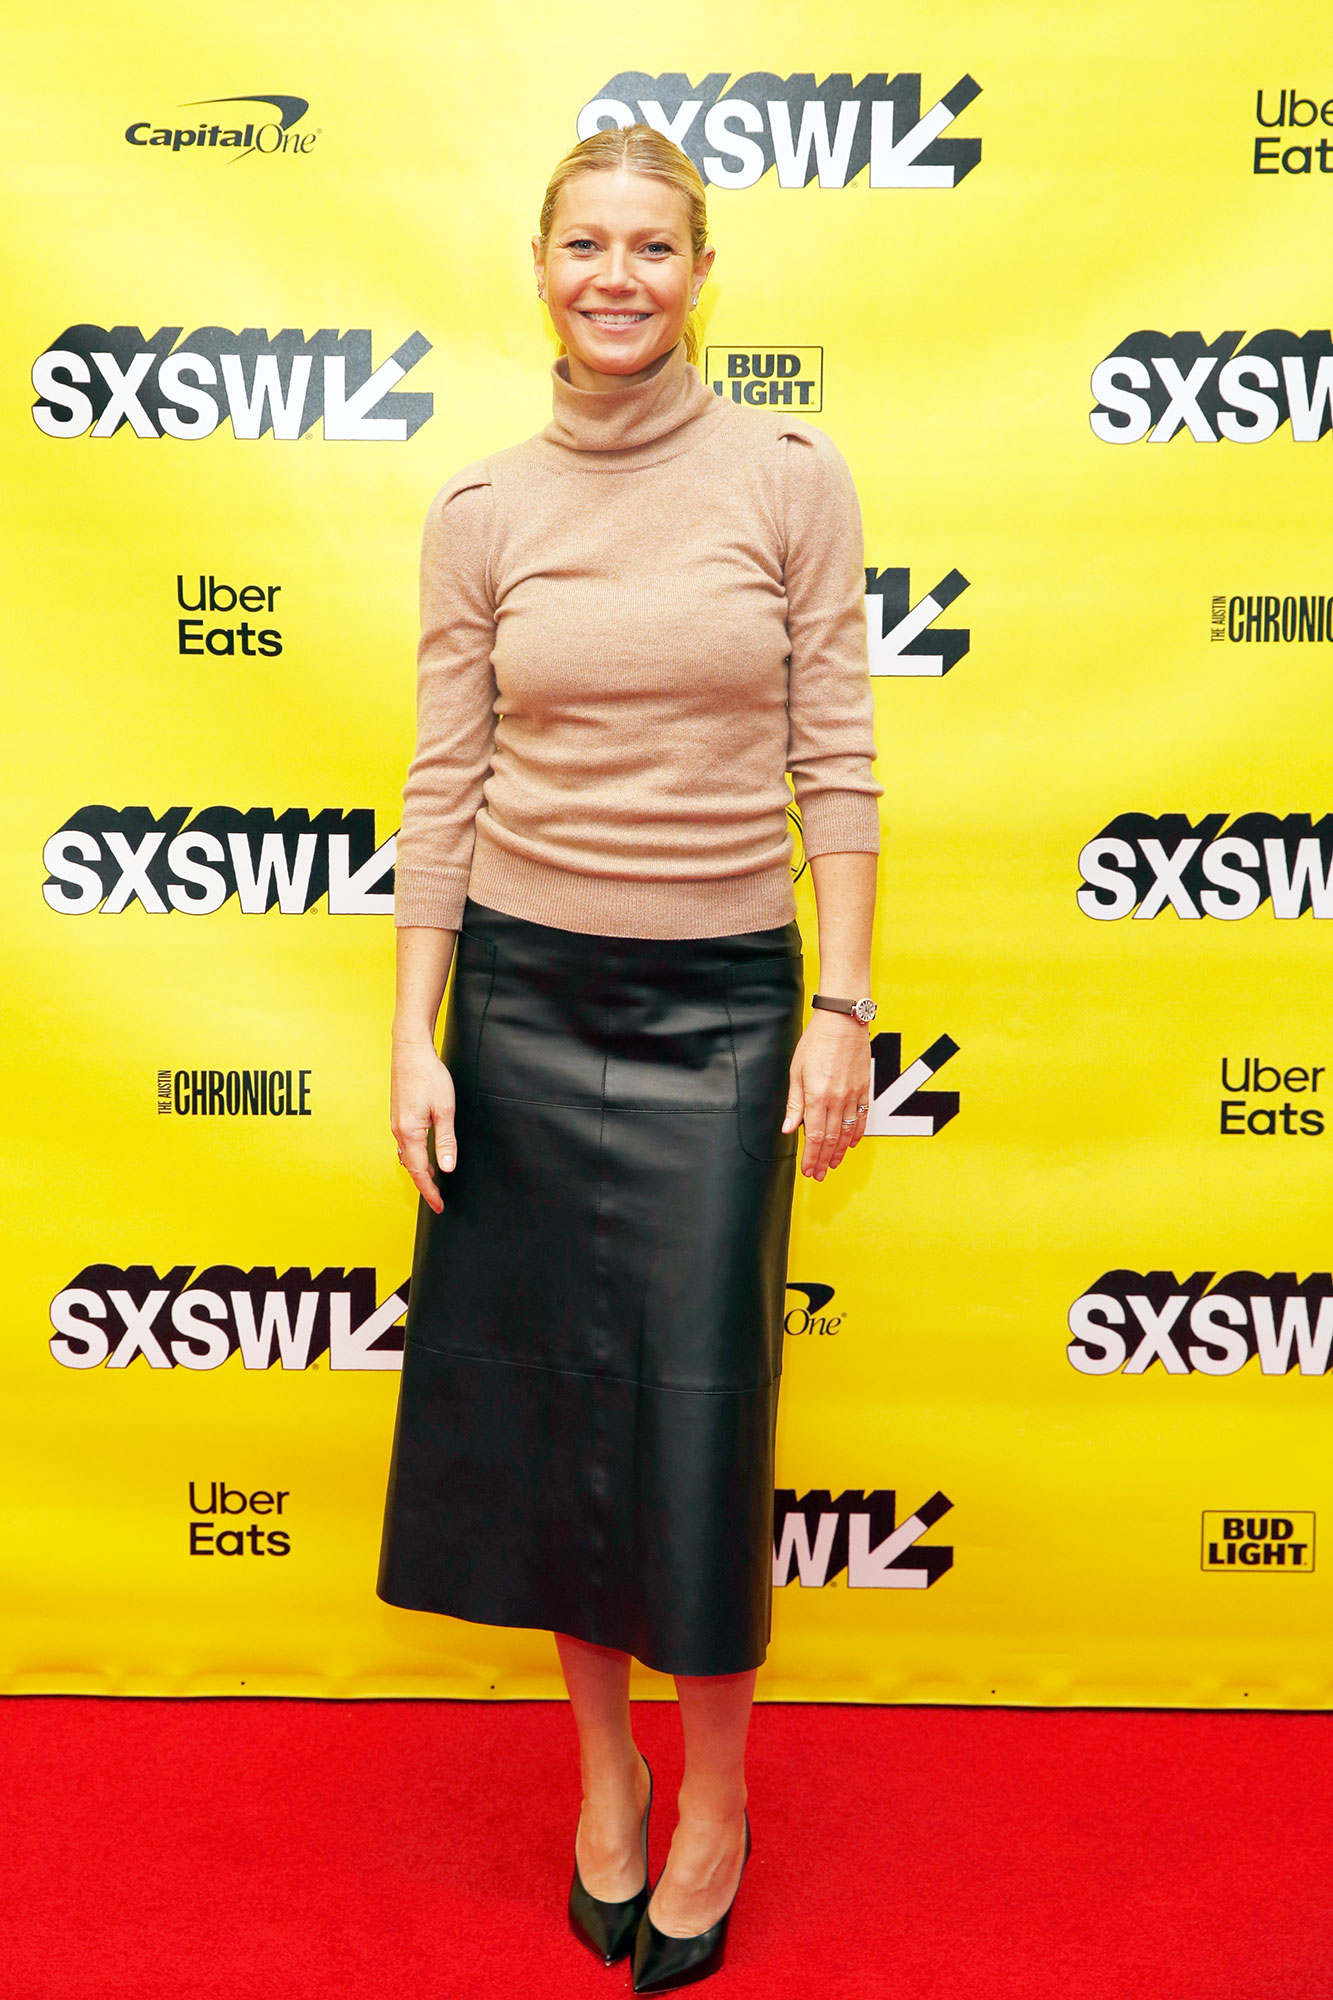 Gwyneth Paltrow SXSW Is Giving Us Chic Outfit Inspo for Spring - It was all about the chic separates for the Goop founder on Monday, March 11, in an oatmeal-colored turtleneck sweater and black leather skirt.